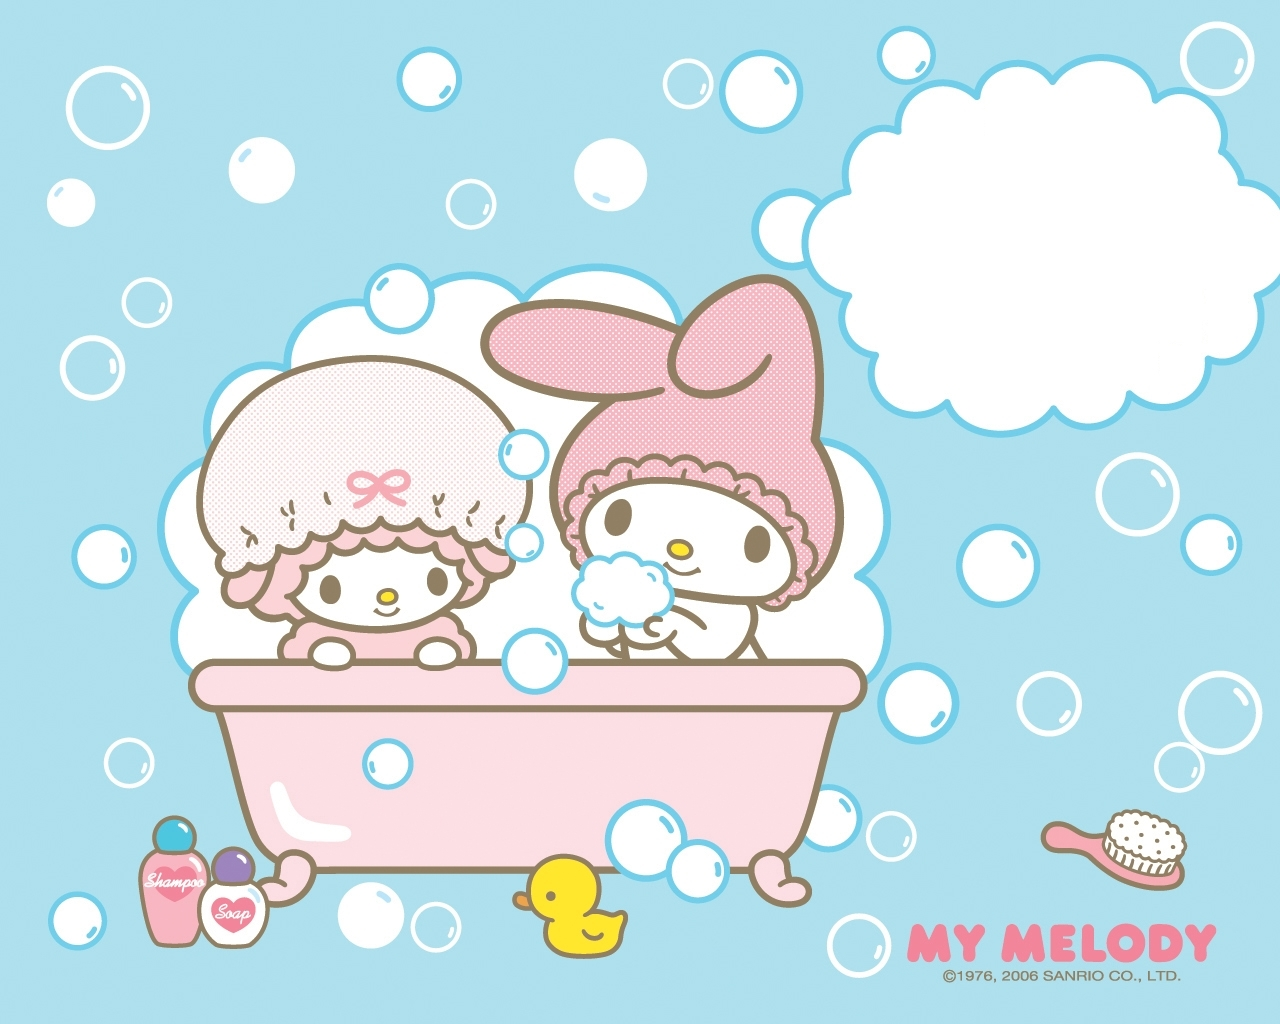 45+ Sanrio My Melody Wallpaper on WallpaperSafari